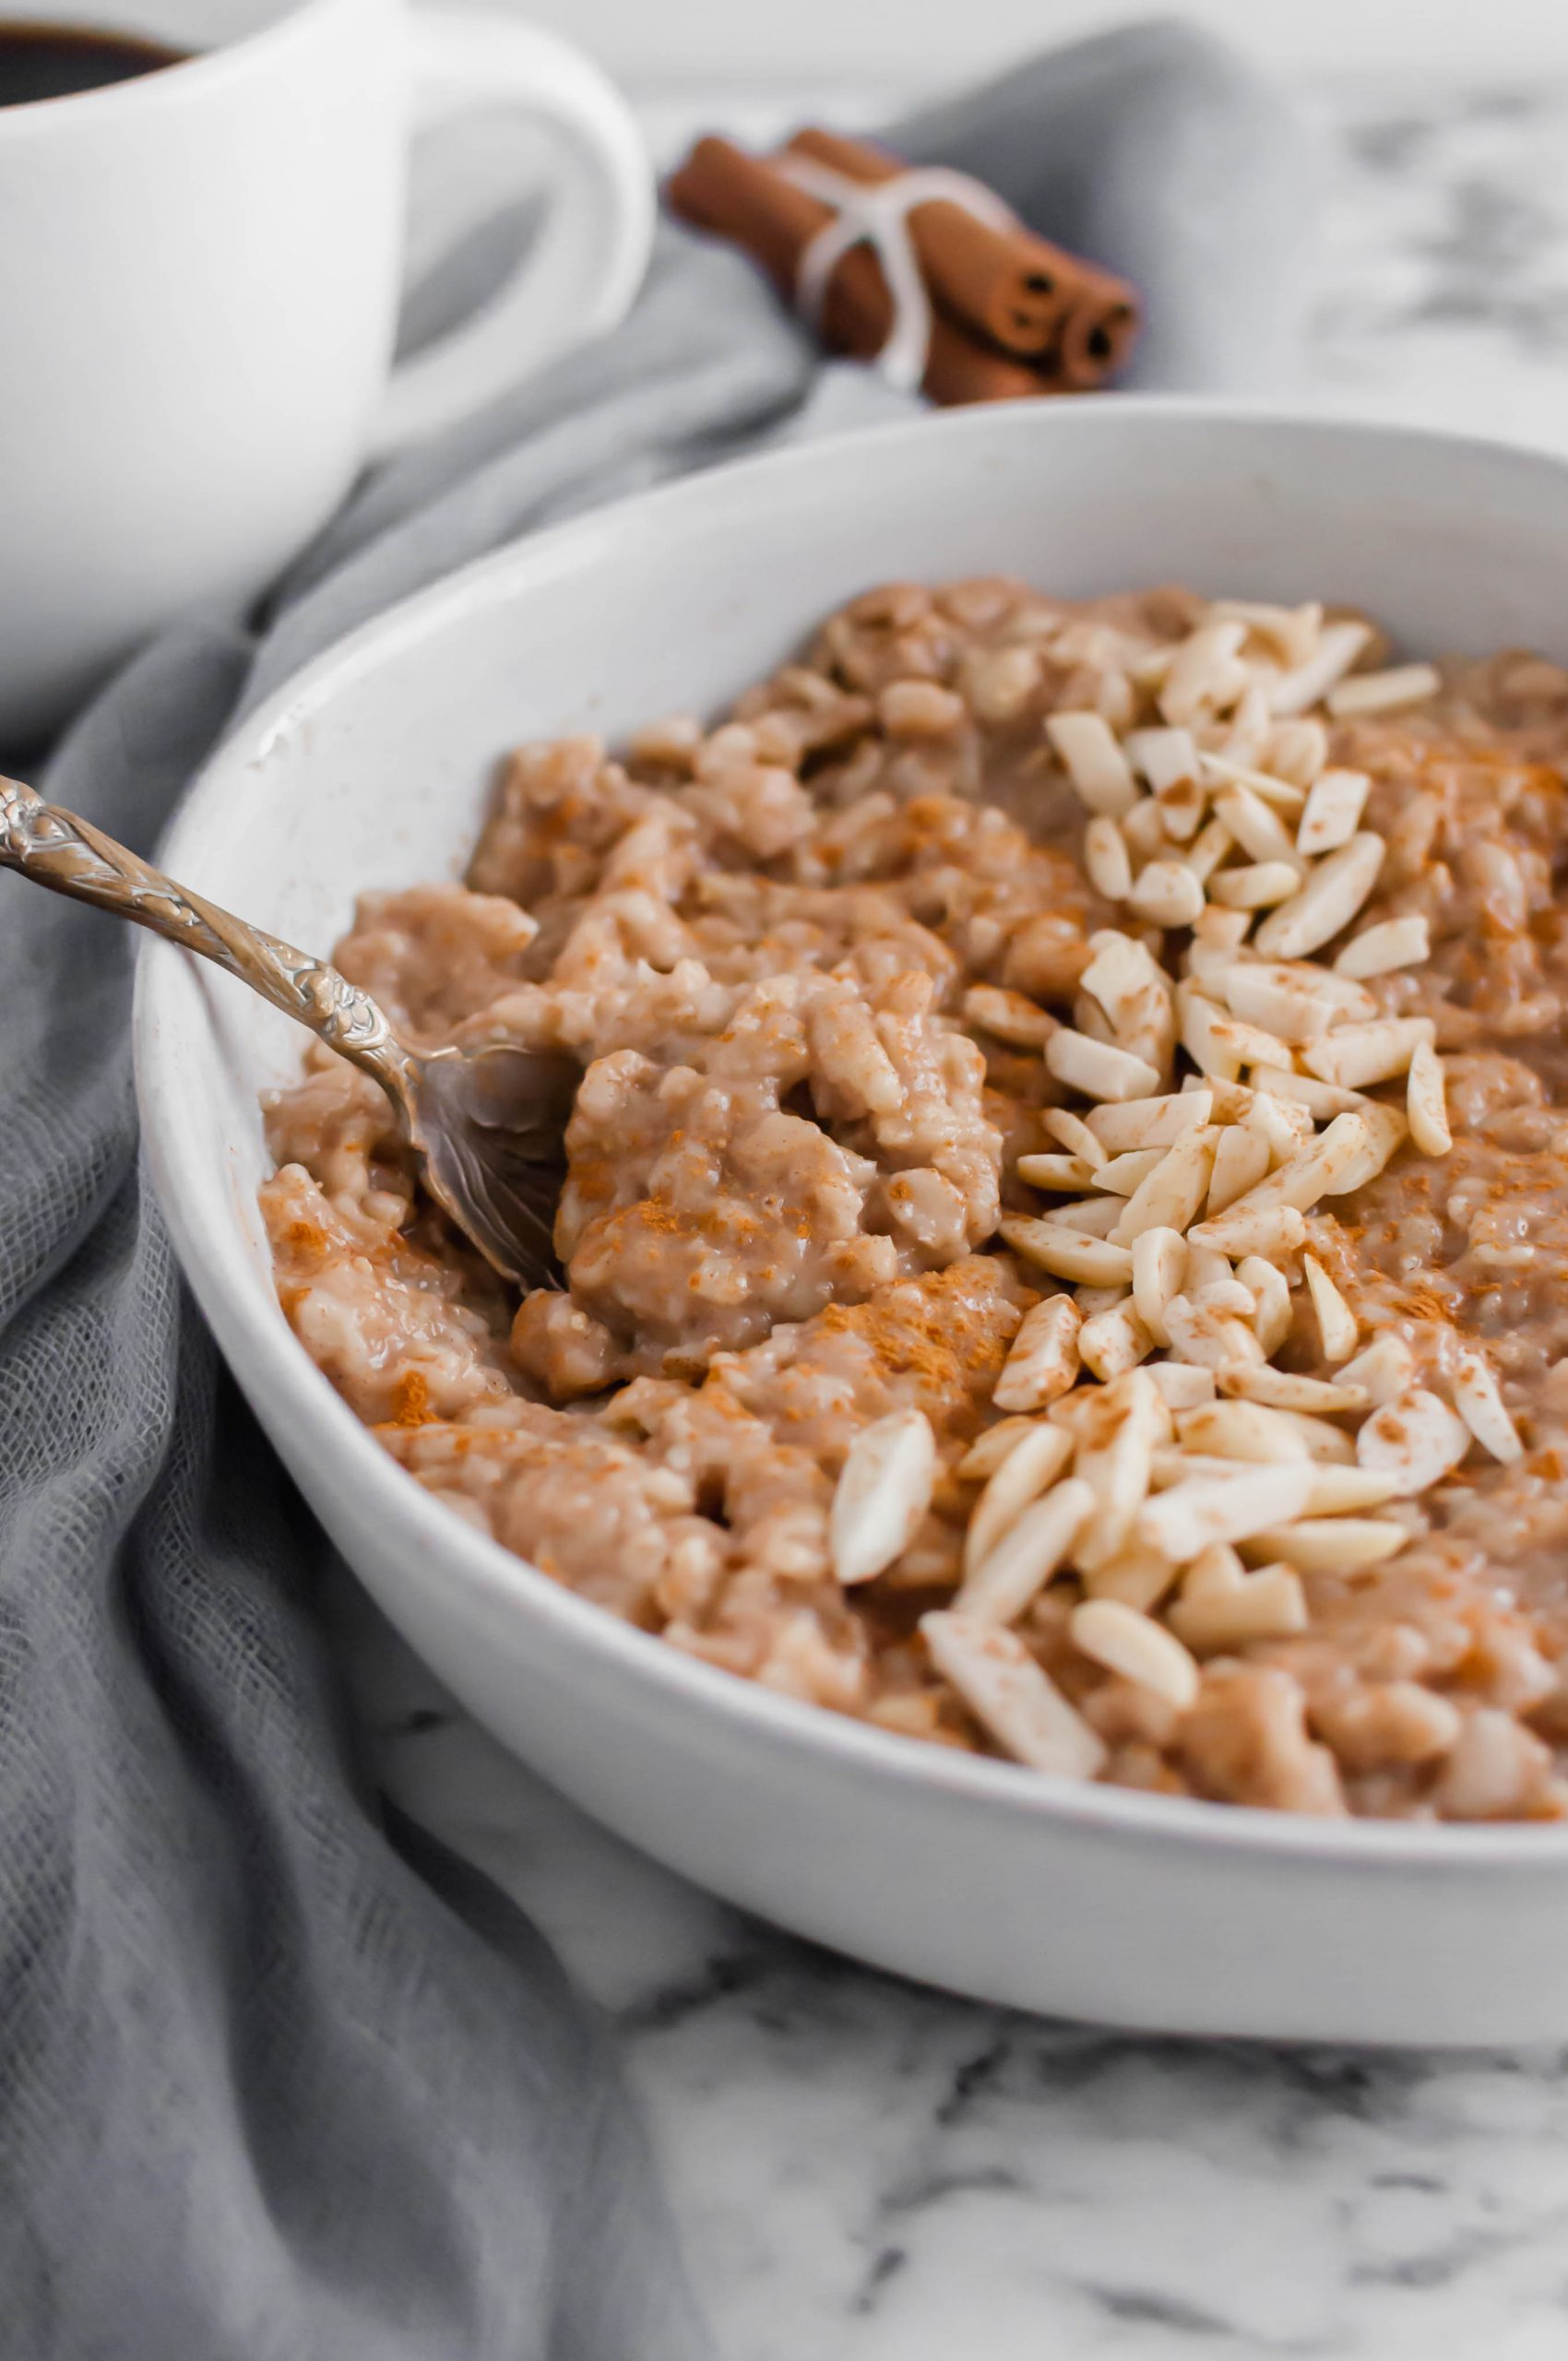 This Brown Sugar Cinnamon Instant Pot Oatmeal couldn't get easier to make. The perfect breakfast for school mornings.